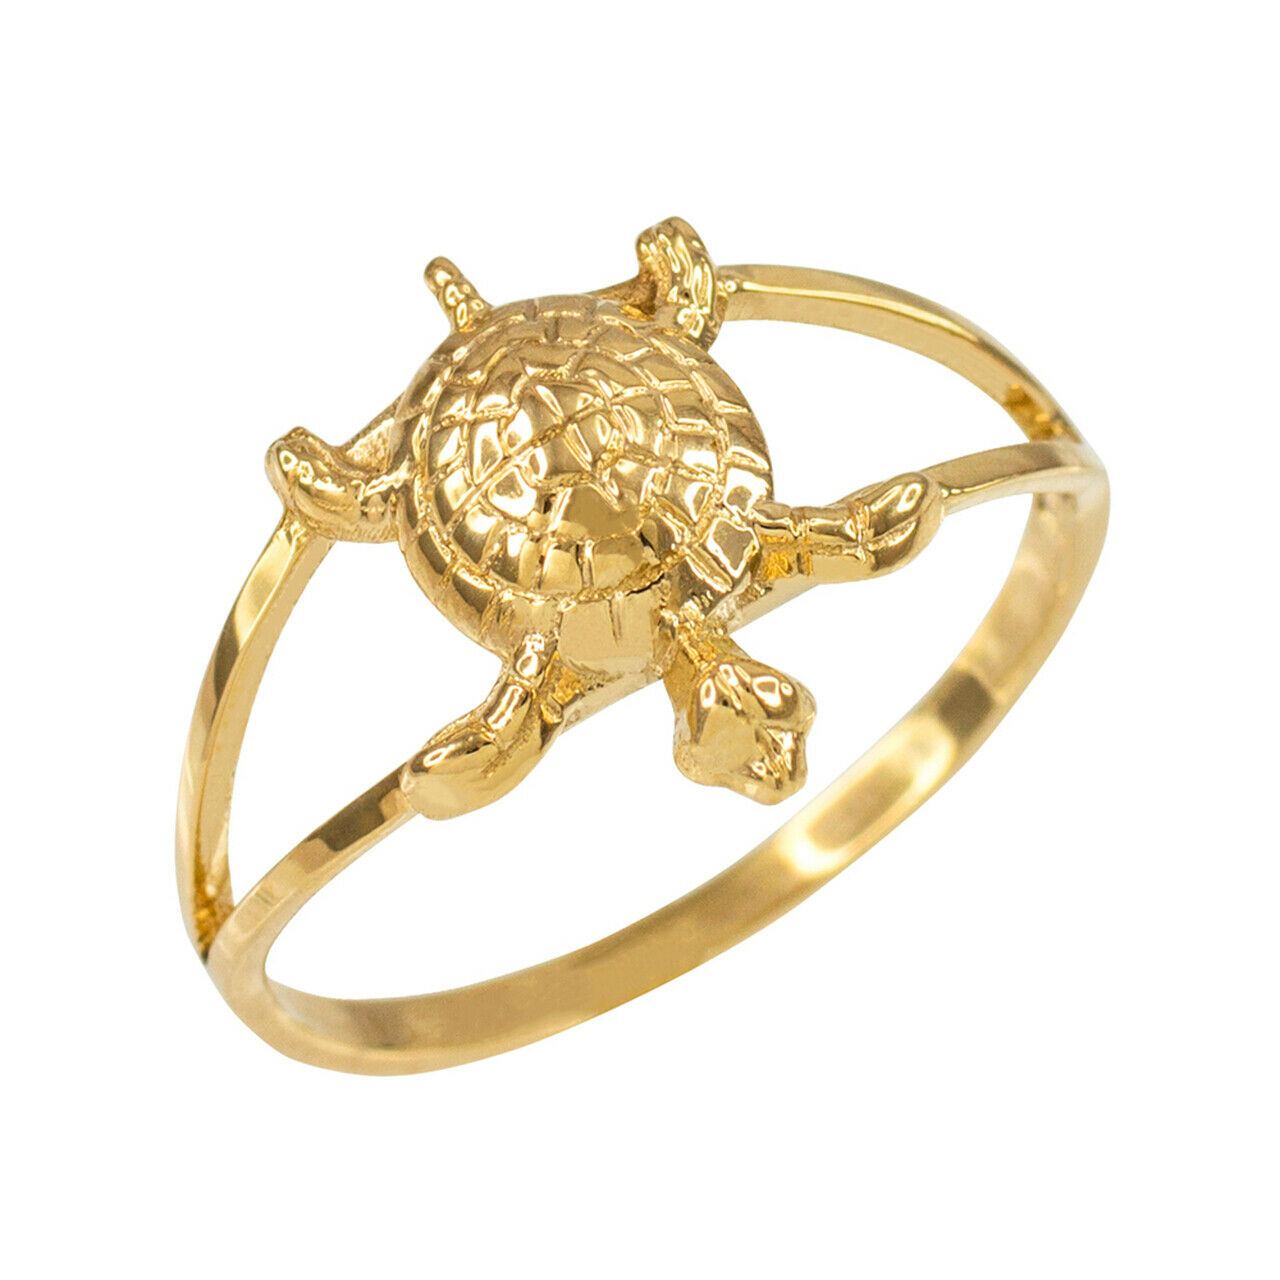 10k Yellow Gold Dainty Lucky Hawaiian Honu Turtle Charm Ring Any/ All Sizes